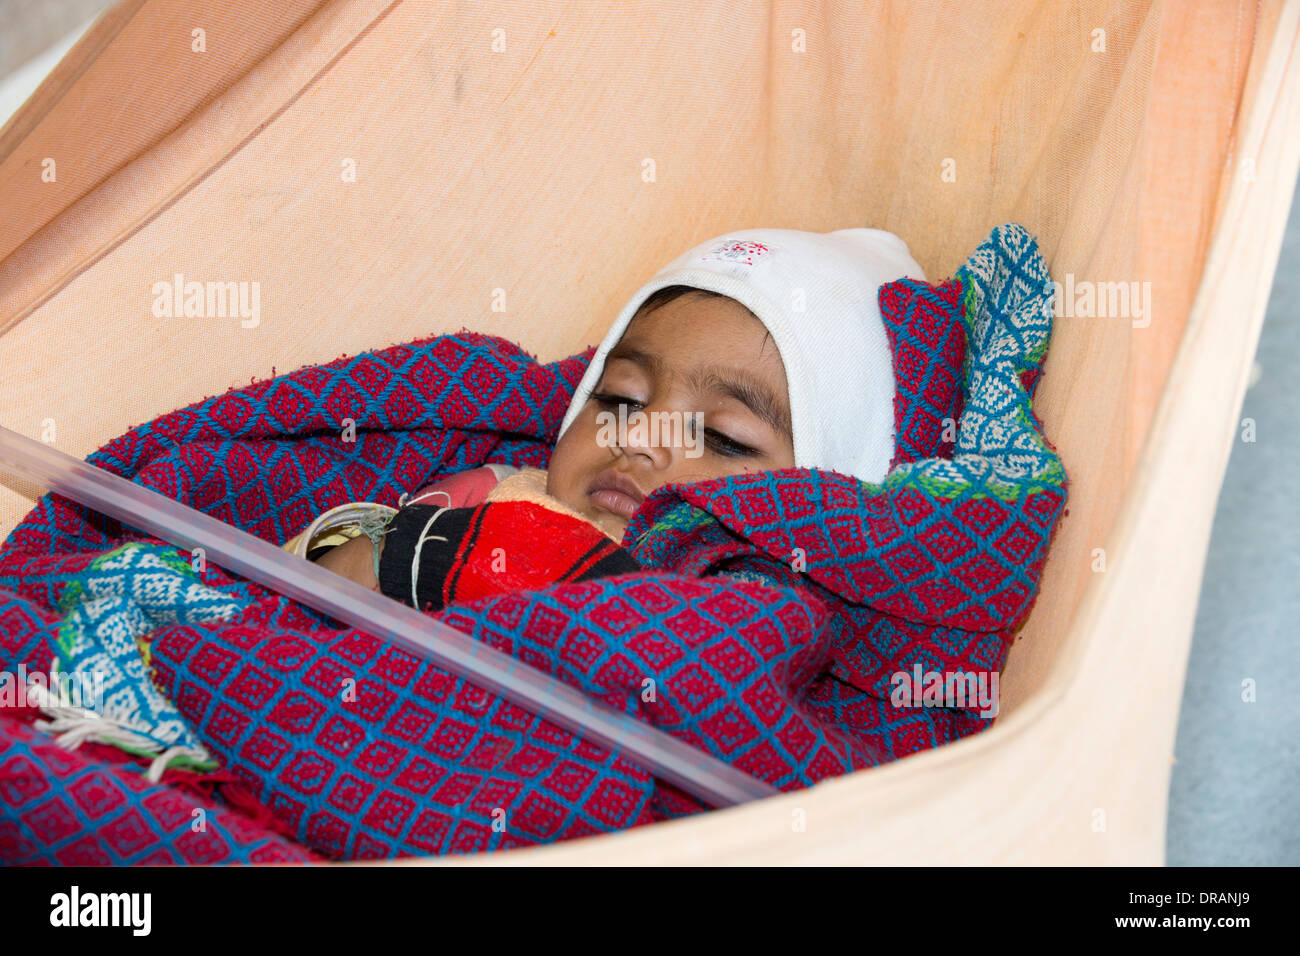 a baby in a hammock in rajasthan india a baby in a hammock in rajasthan india stock photo royalty free      rh   alamy